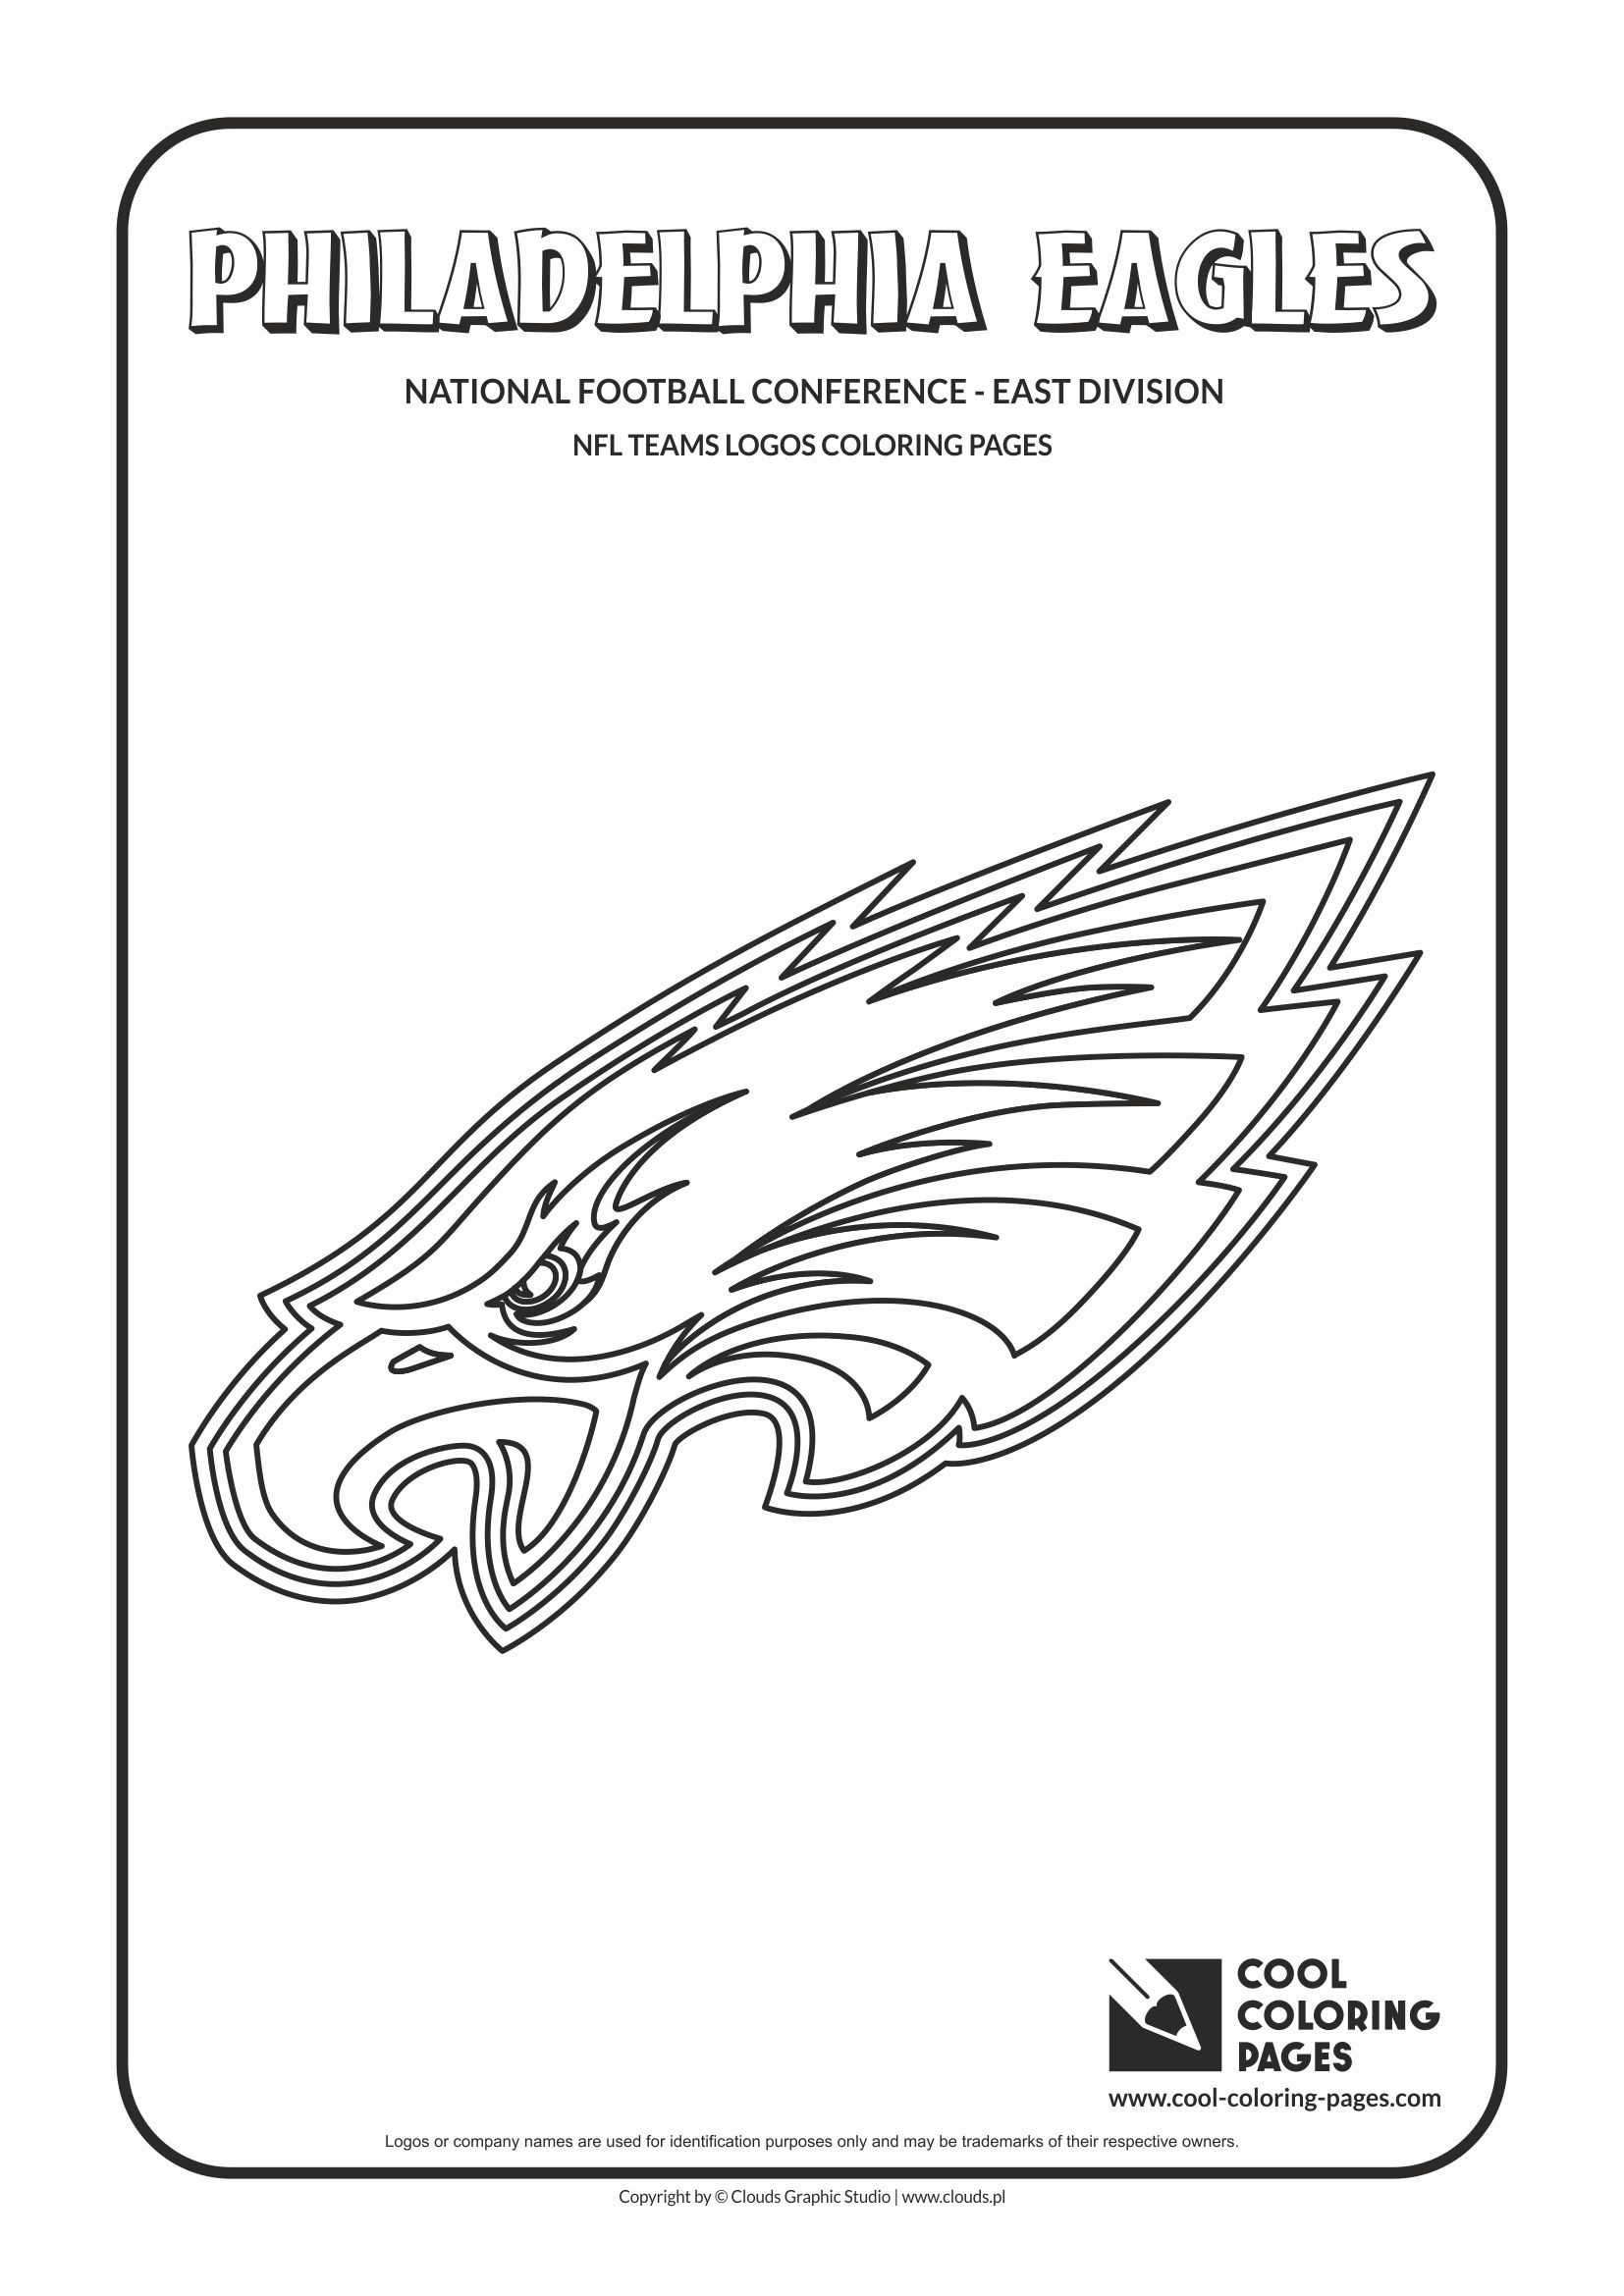 Cool Coloring Pages Philadelphia Eagles